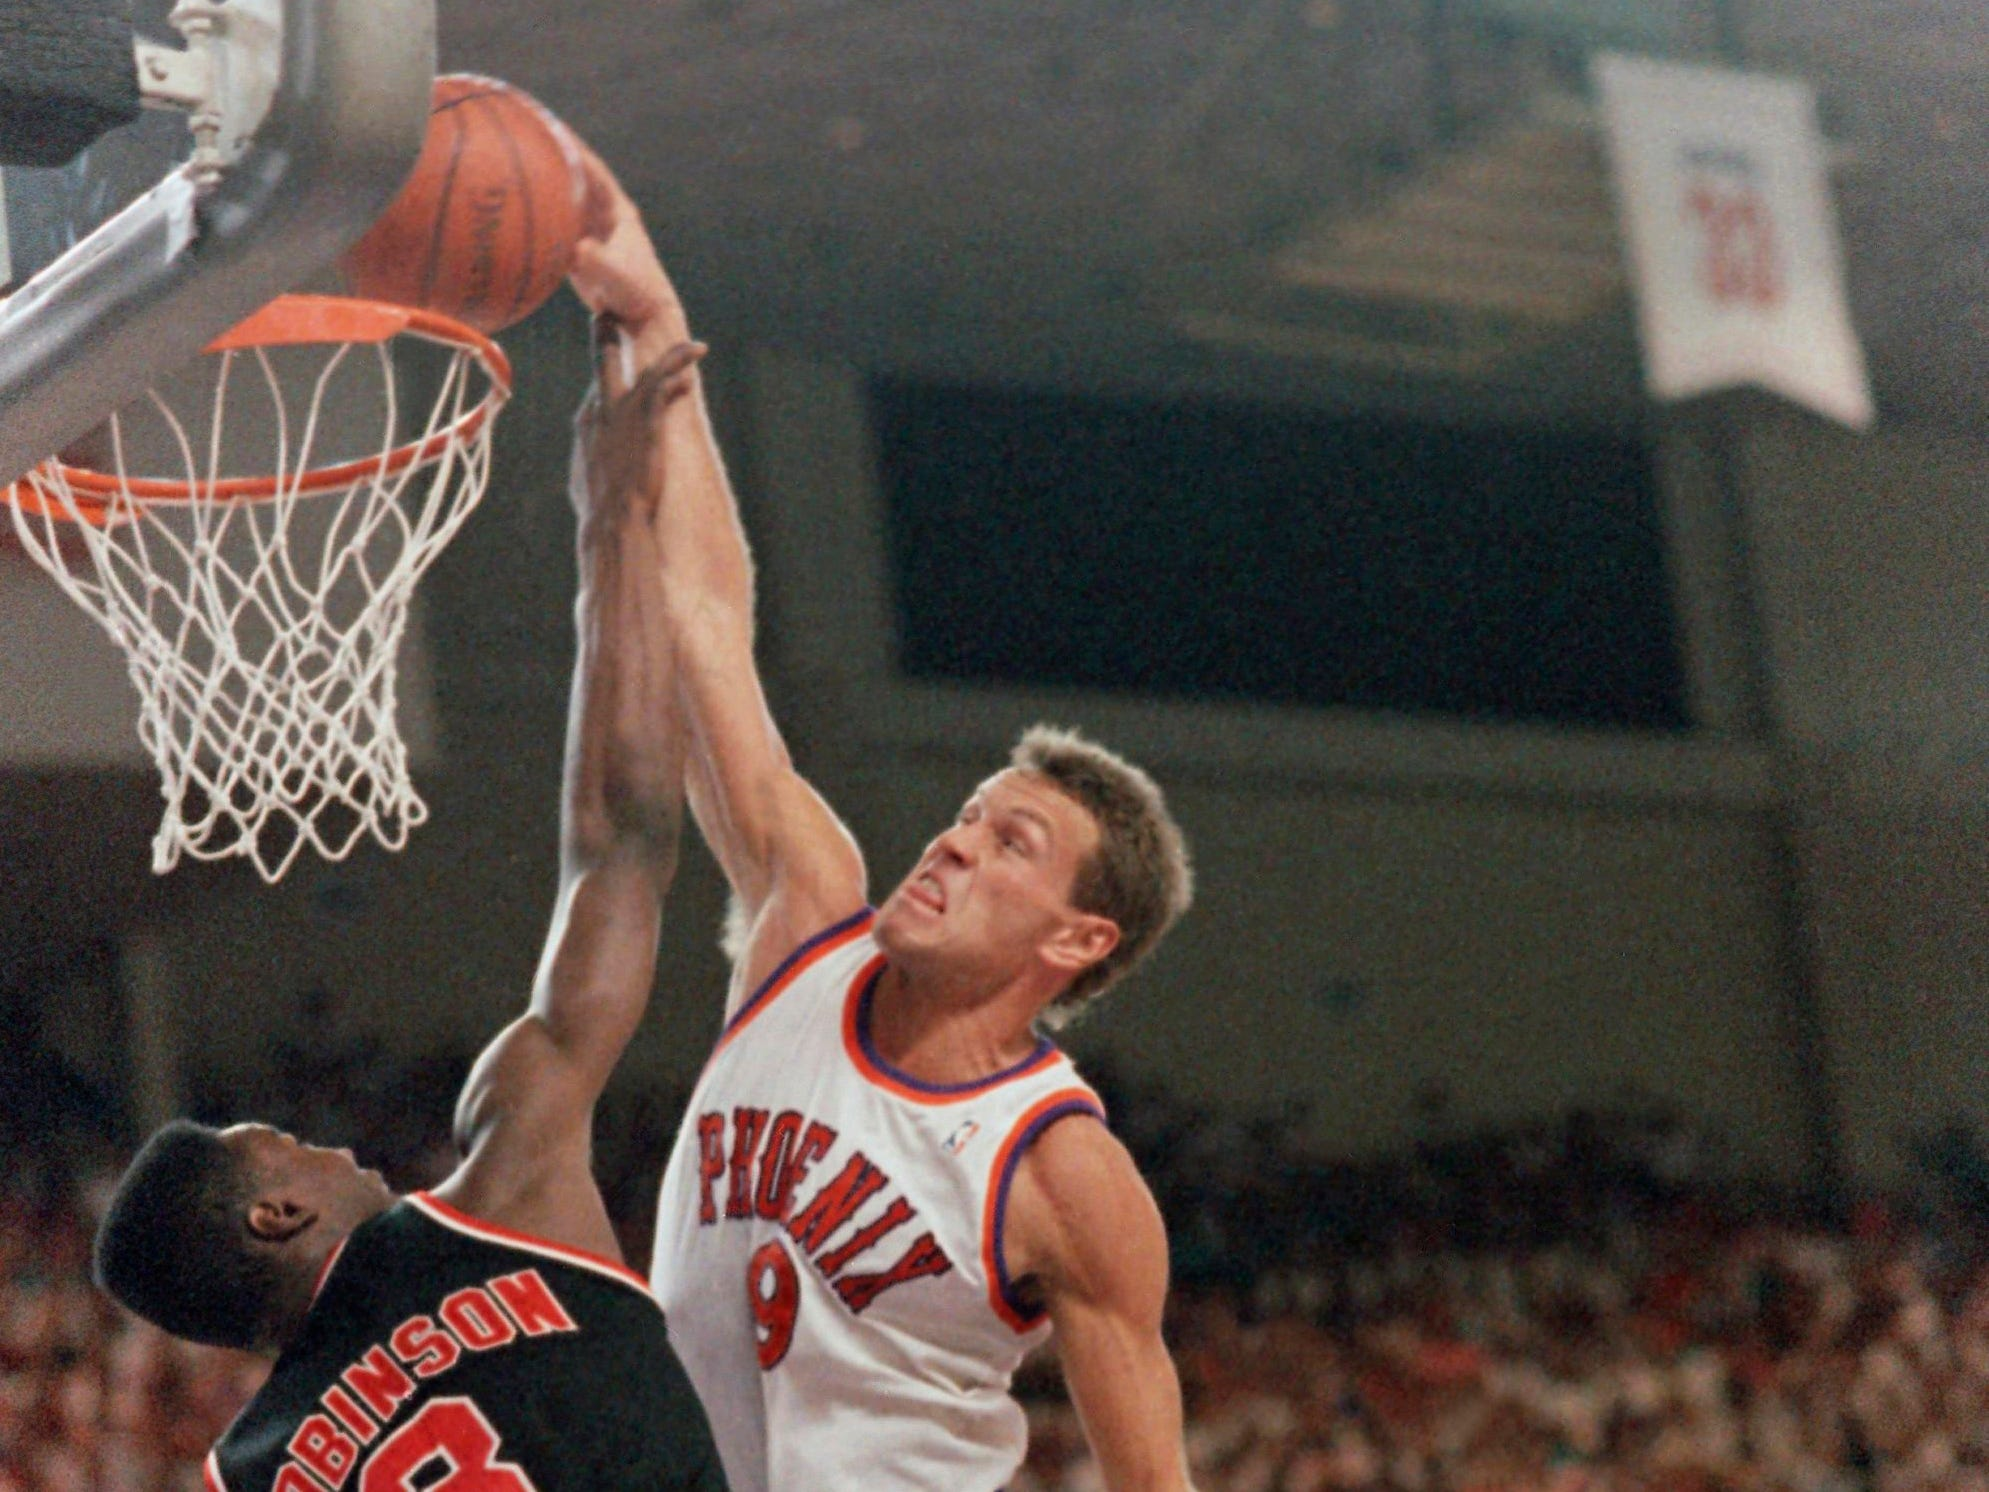 1990-91 | Suns MVP: Dan Majerle (seen the previous season). Thunder Dan came off the bench to average 13.6 points and 5.4 rebounds. But he played starters minutes and was second team All Defense. How many could have guessed how much better it was about to get?